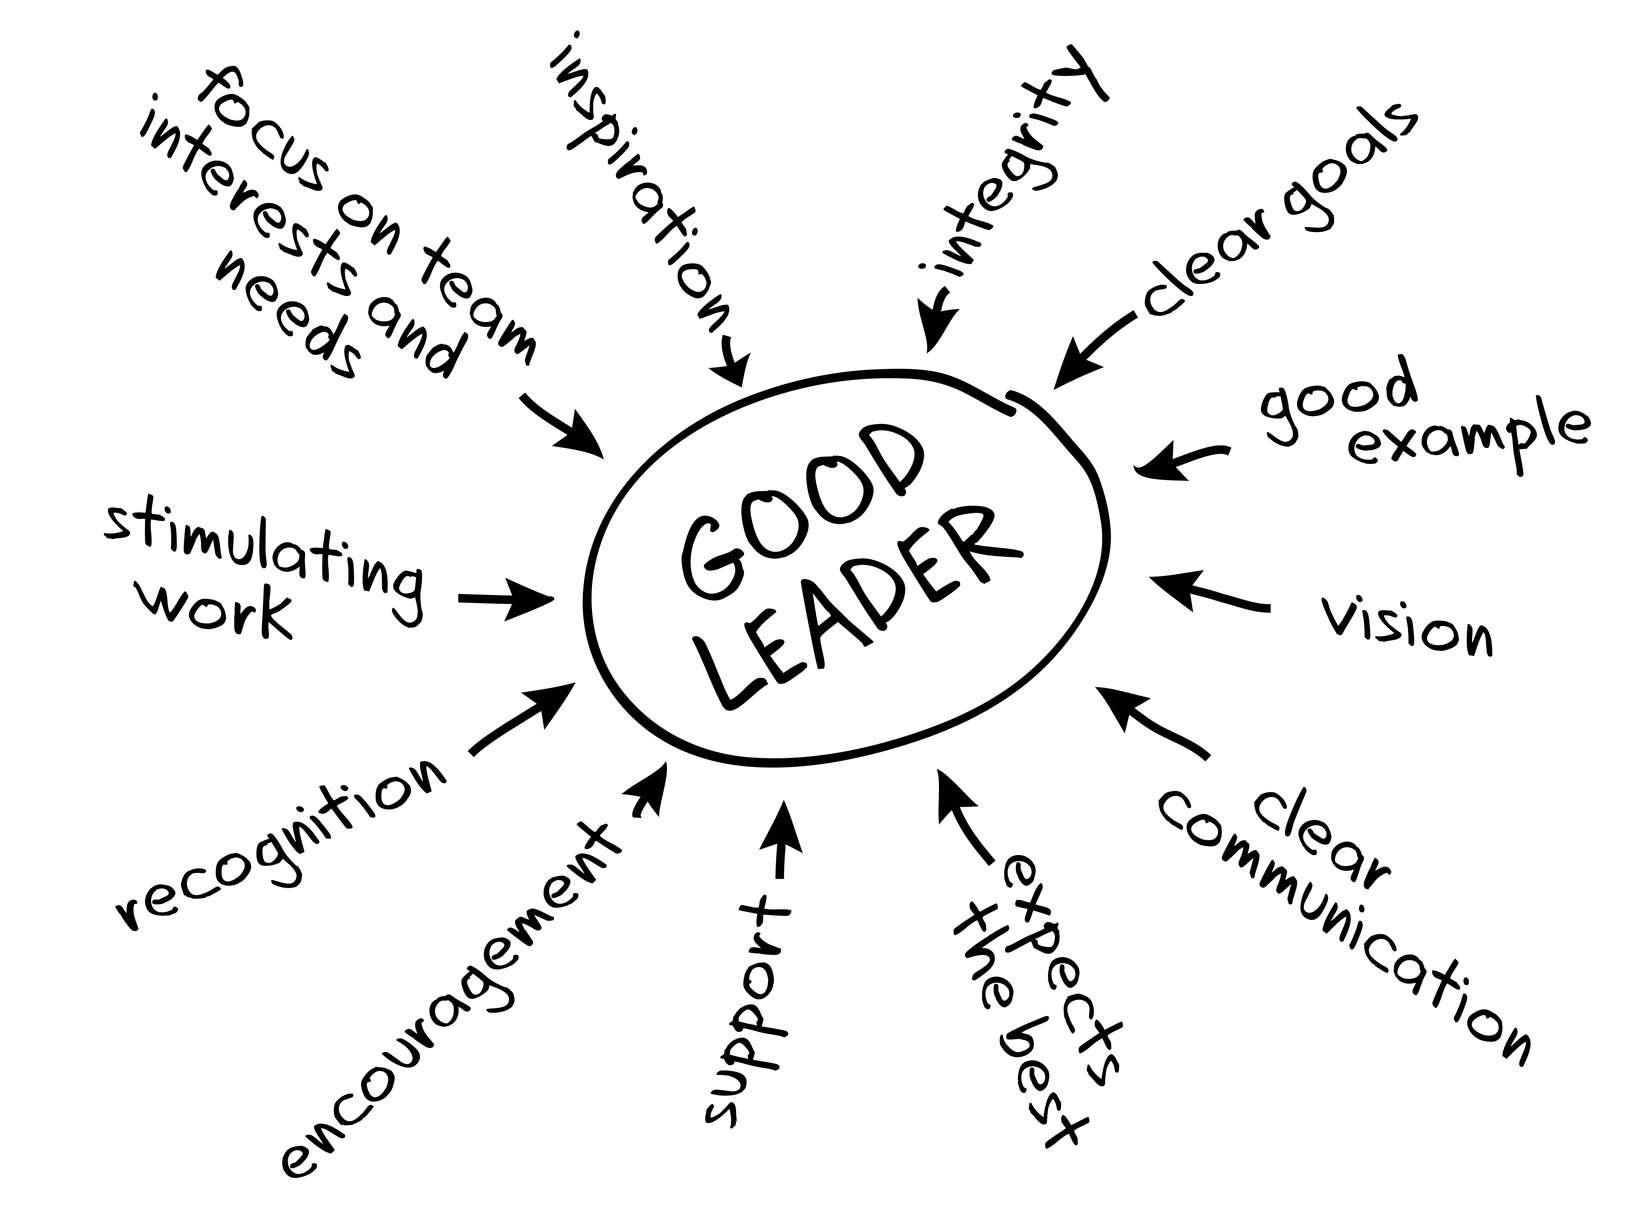 Chart depicting the leadership style of transformational leaders